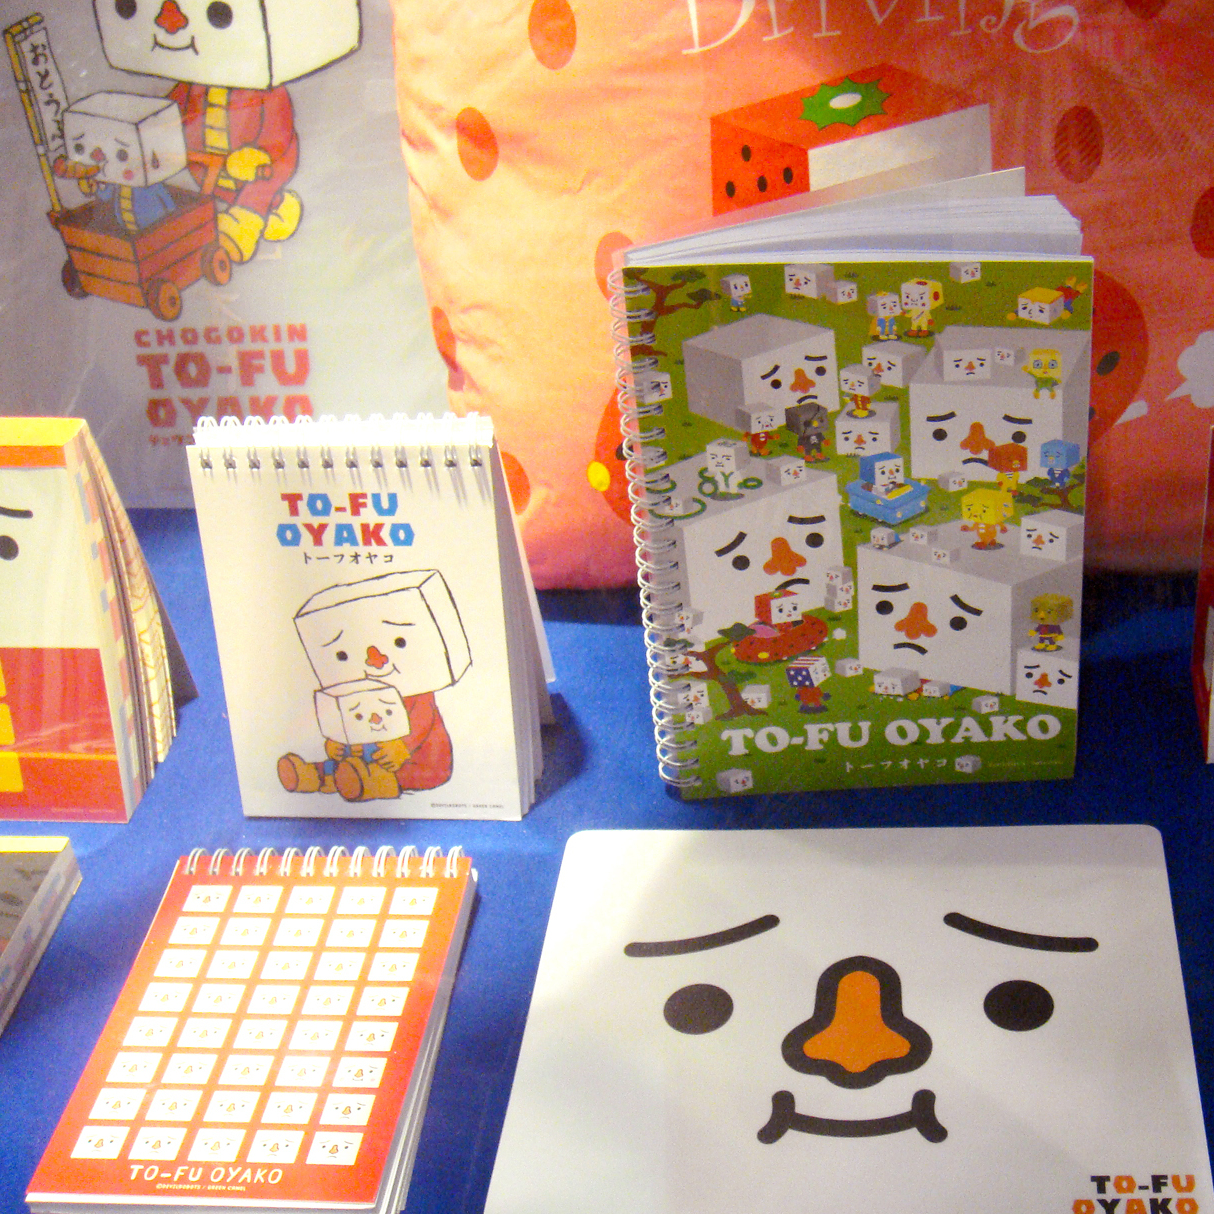 To-fu Oyako is a soybean-curd-inspired line of products, including bags, planners and pillows.